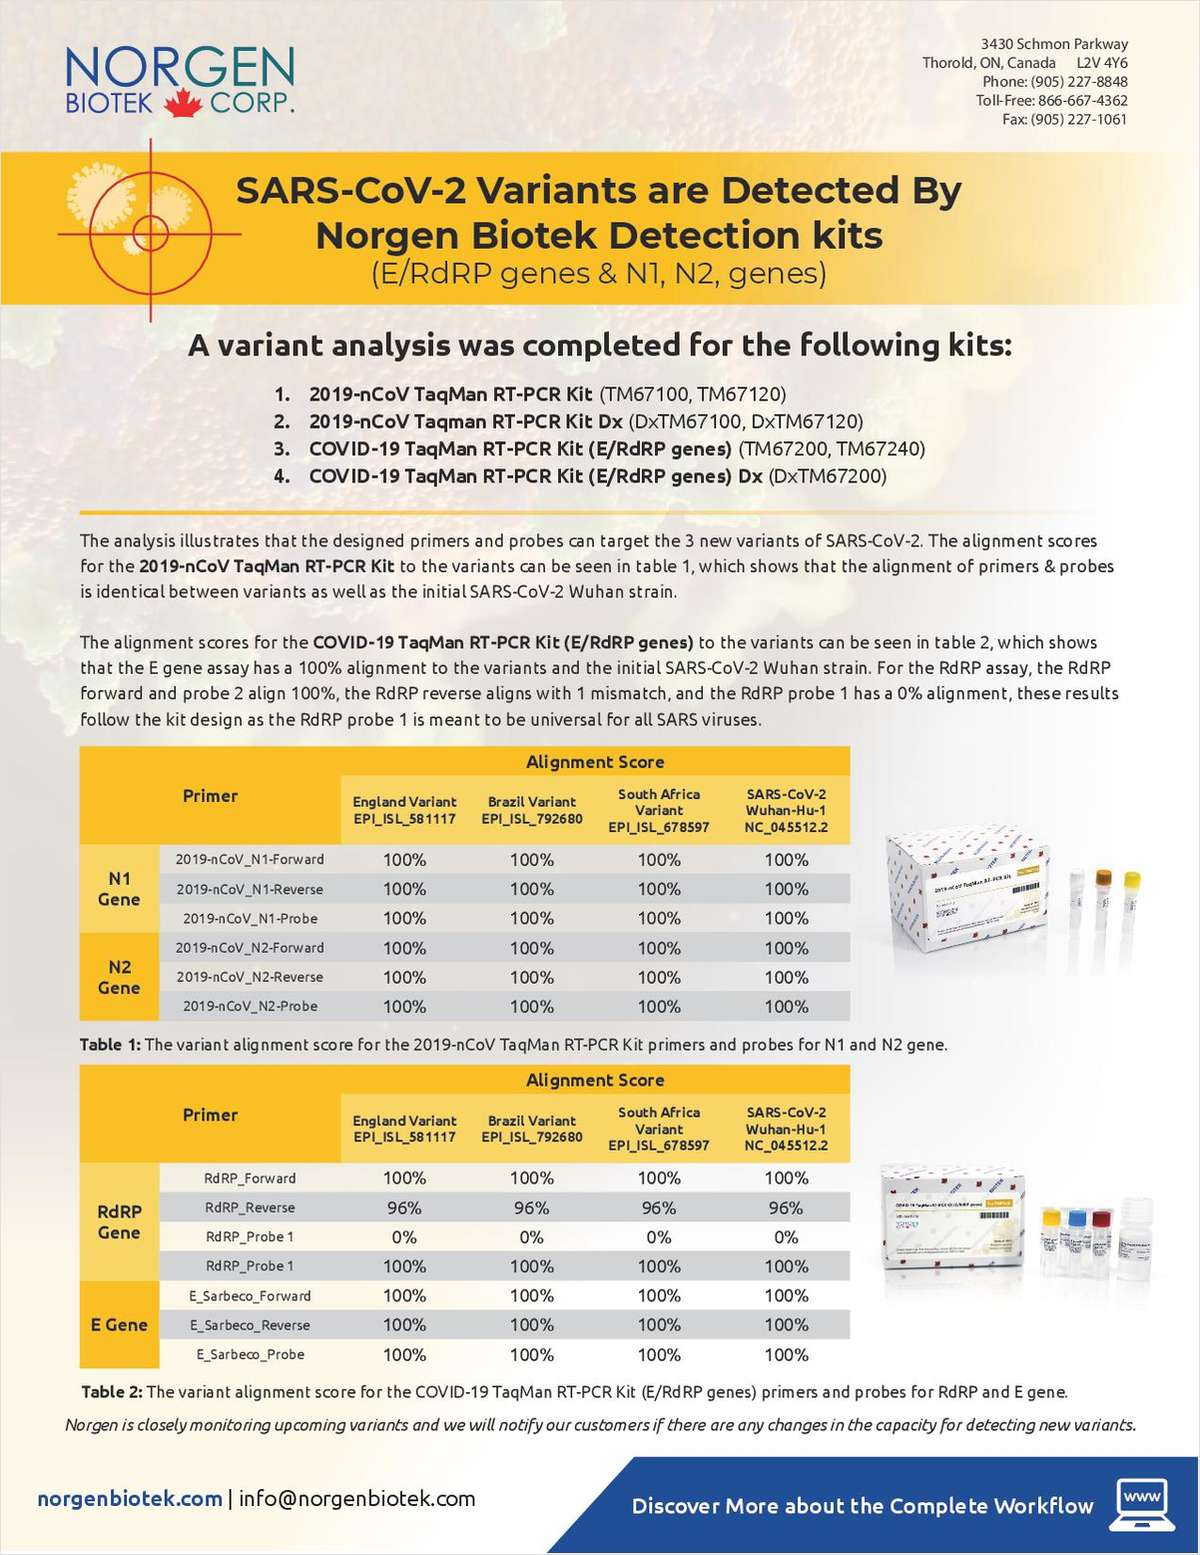 SARS-CoV-2 Variants are Detected By Norgen Biotek Detection kits